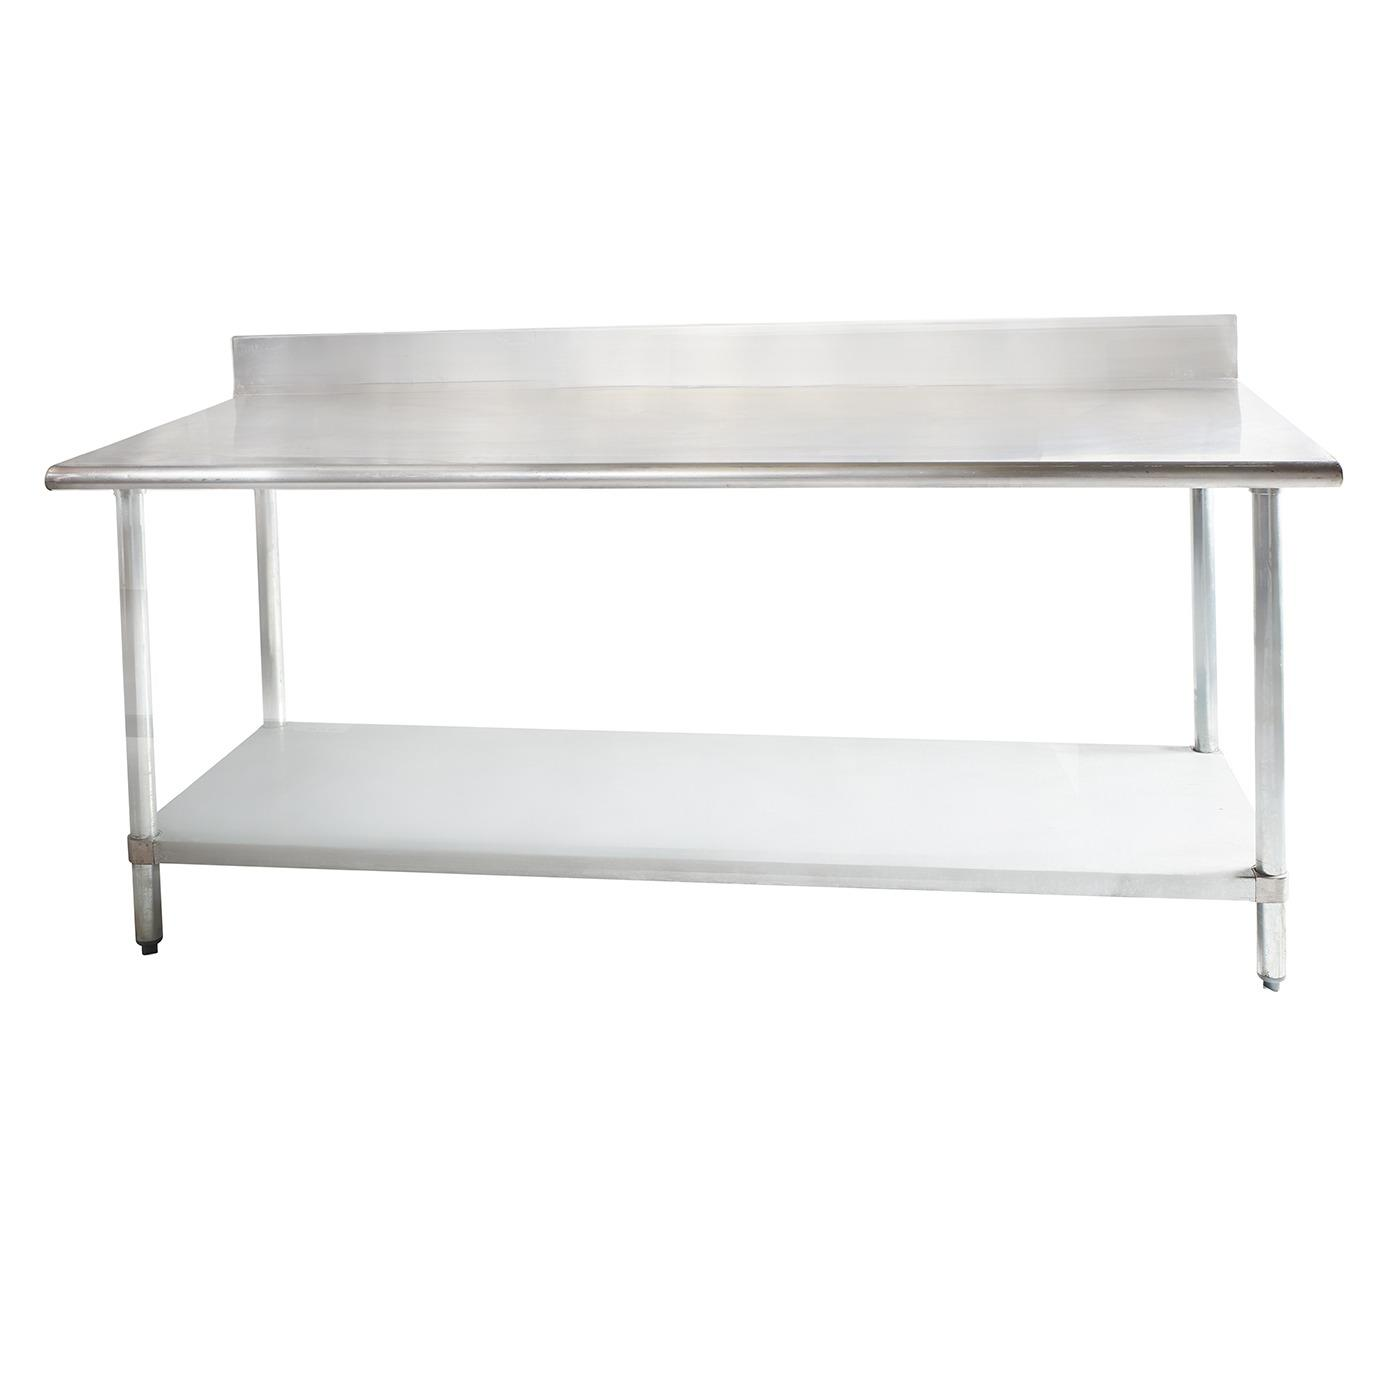 Rectangle Stainless Steel Table - Stainless Steel Work Table with Backsplash